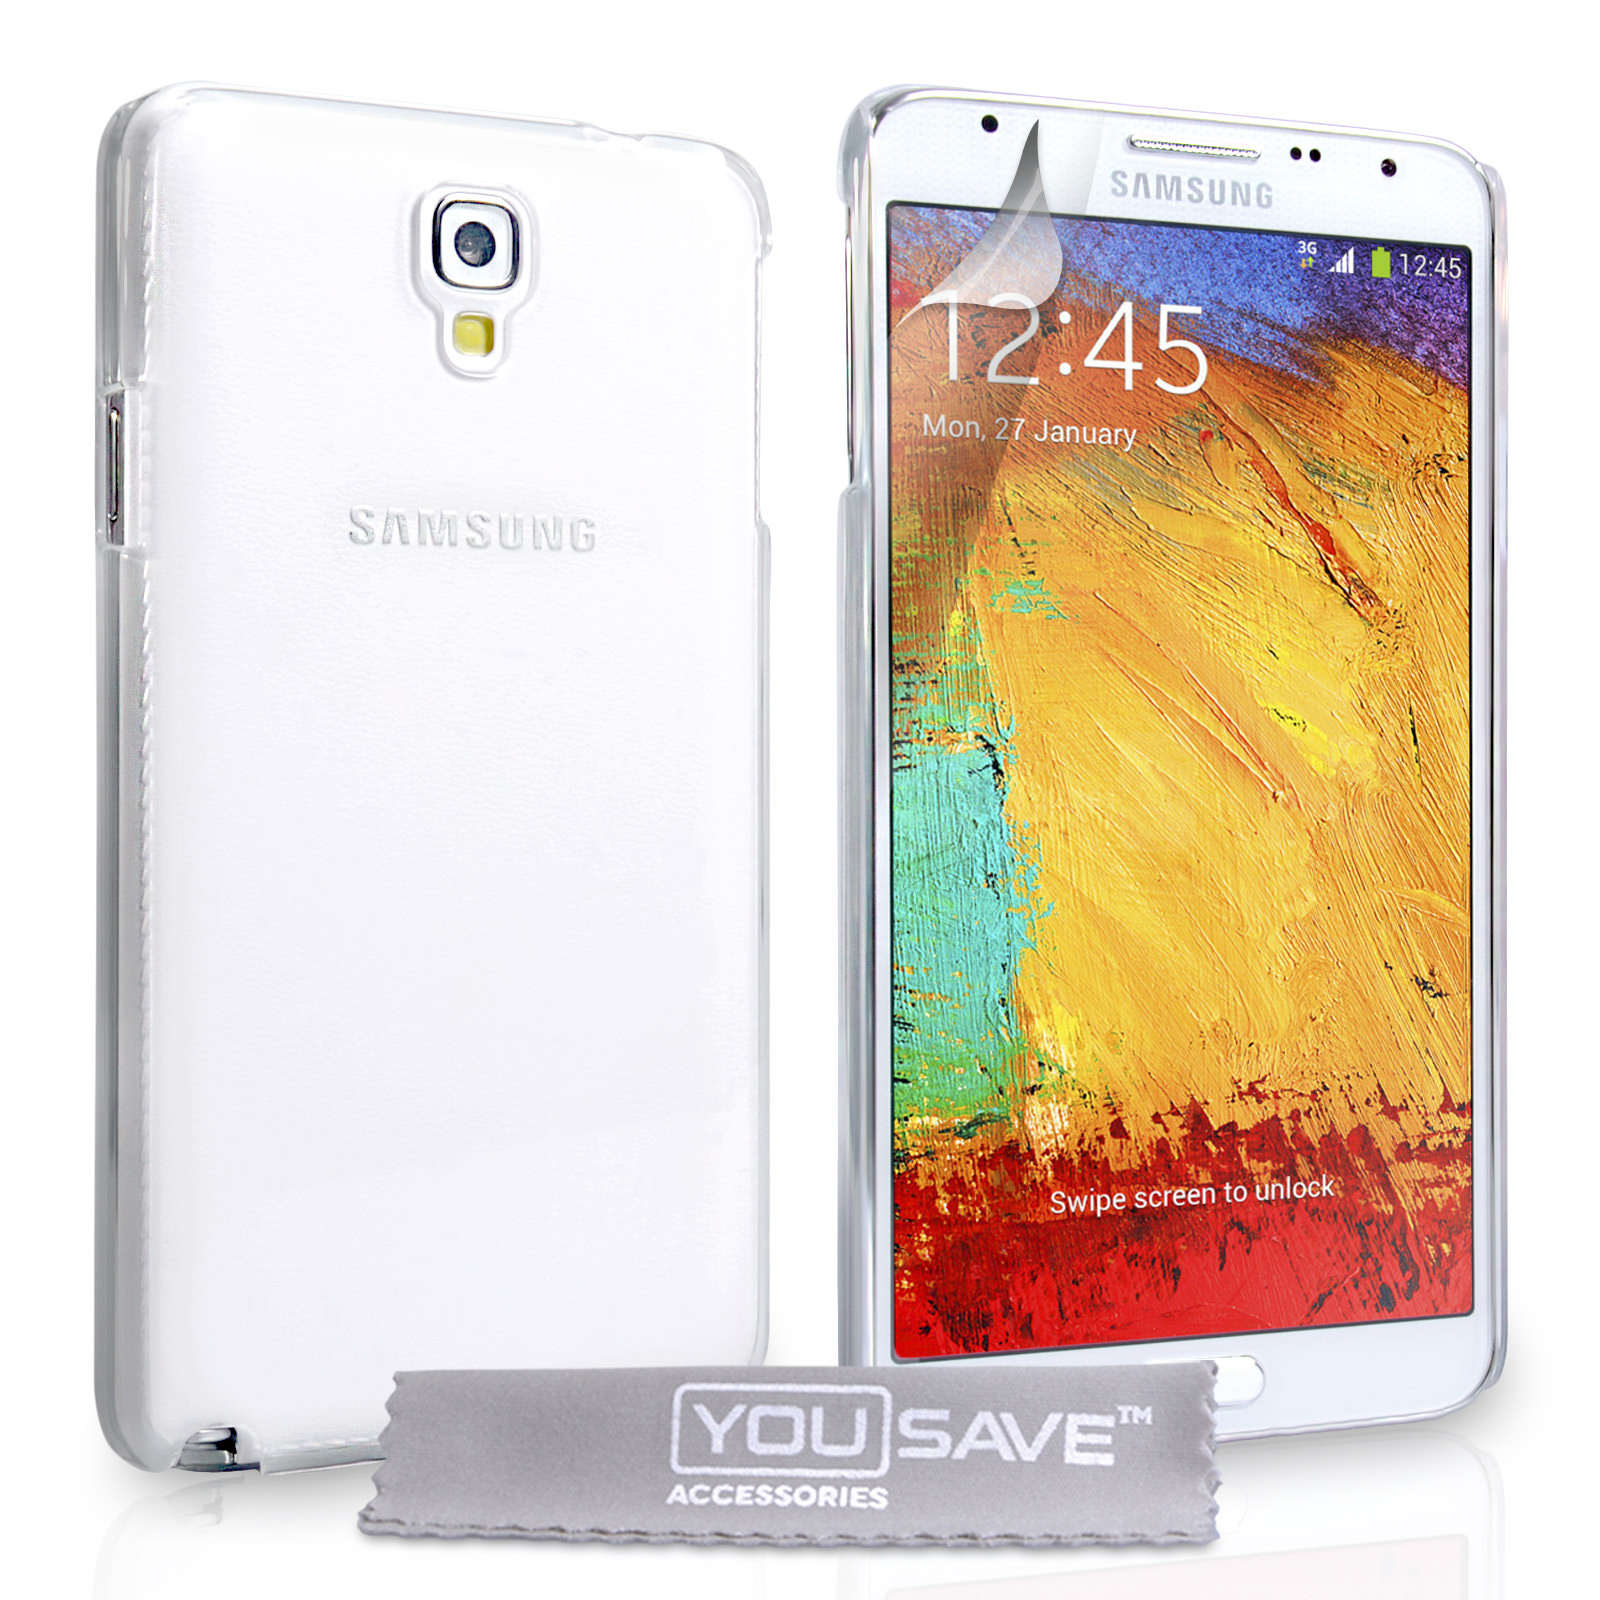 yousave accessories samsung galaxy note 3 neo screen. Black Bedroom Furniture Sets. Home Design Ideas